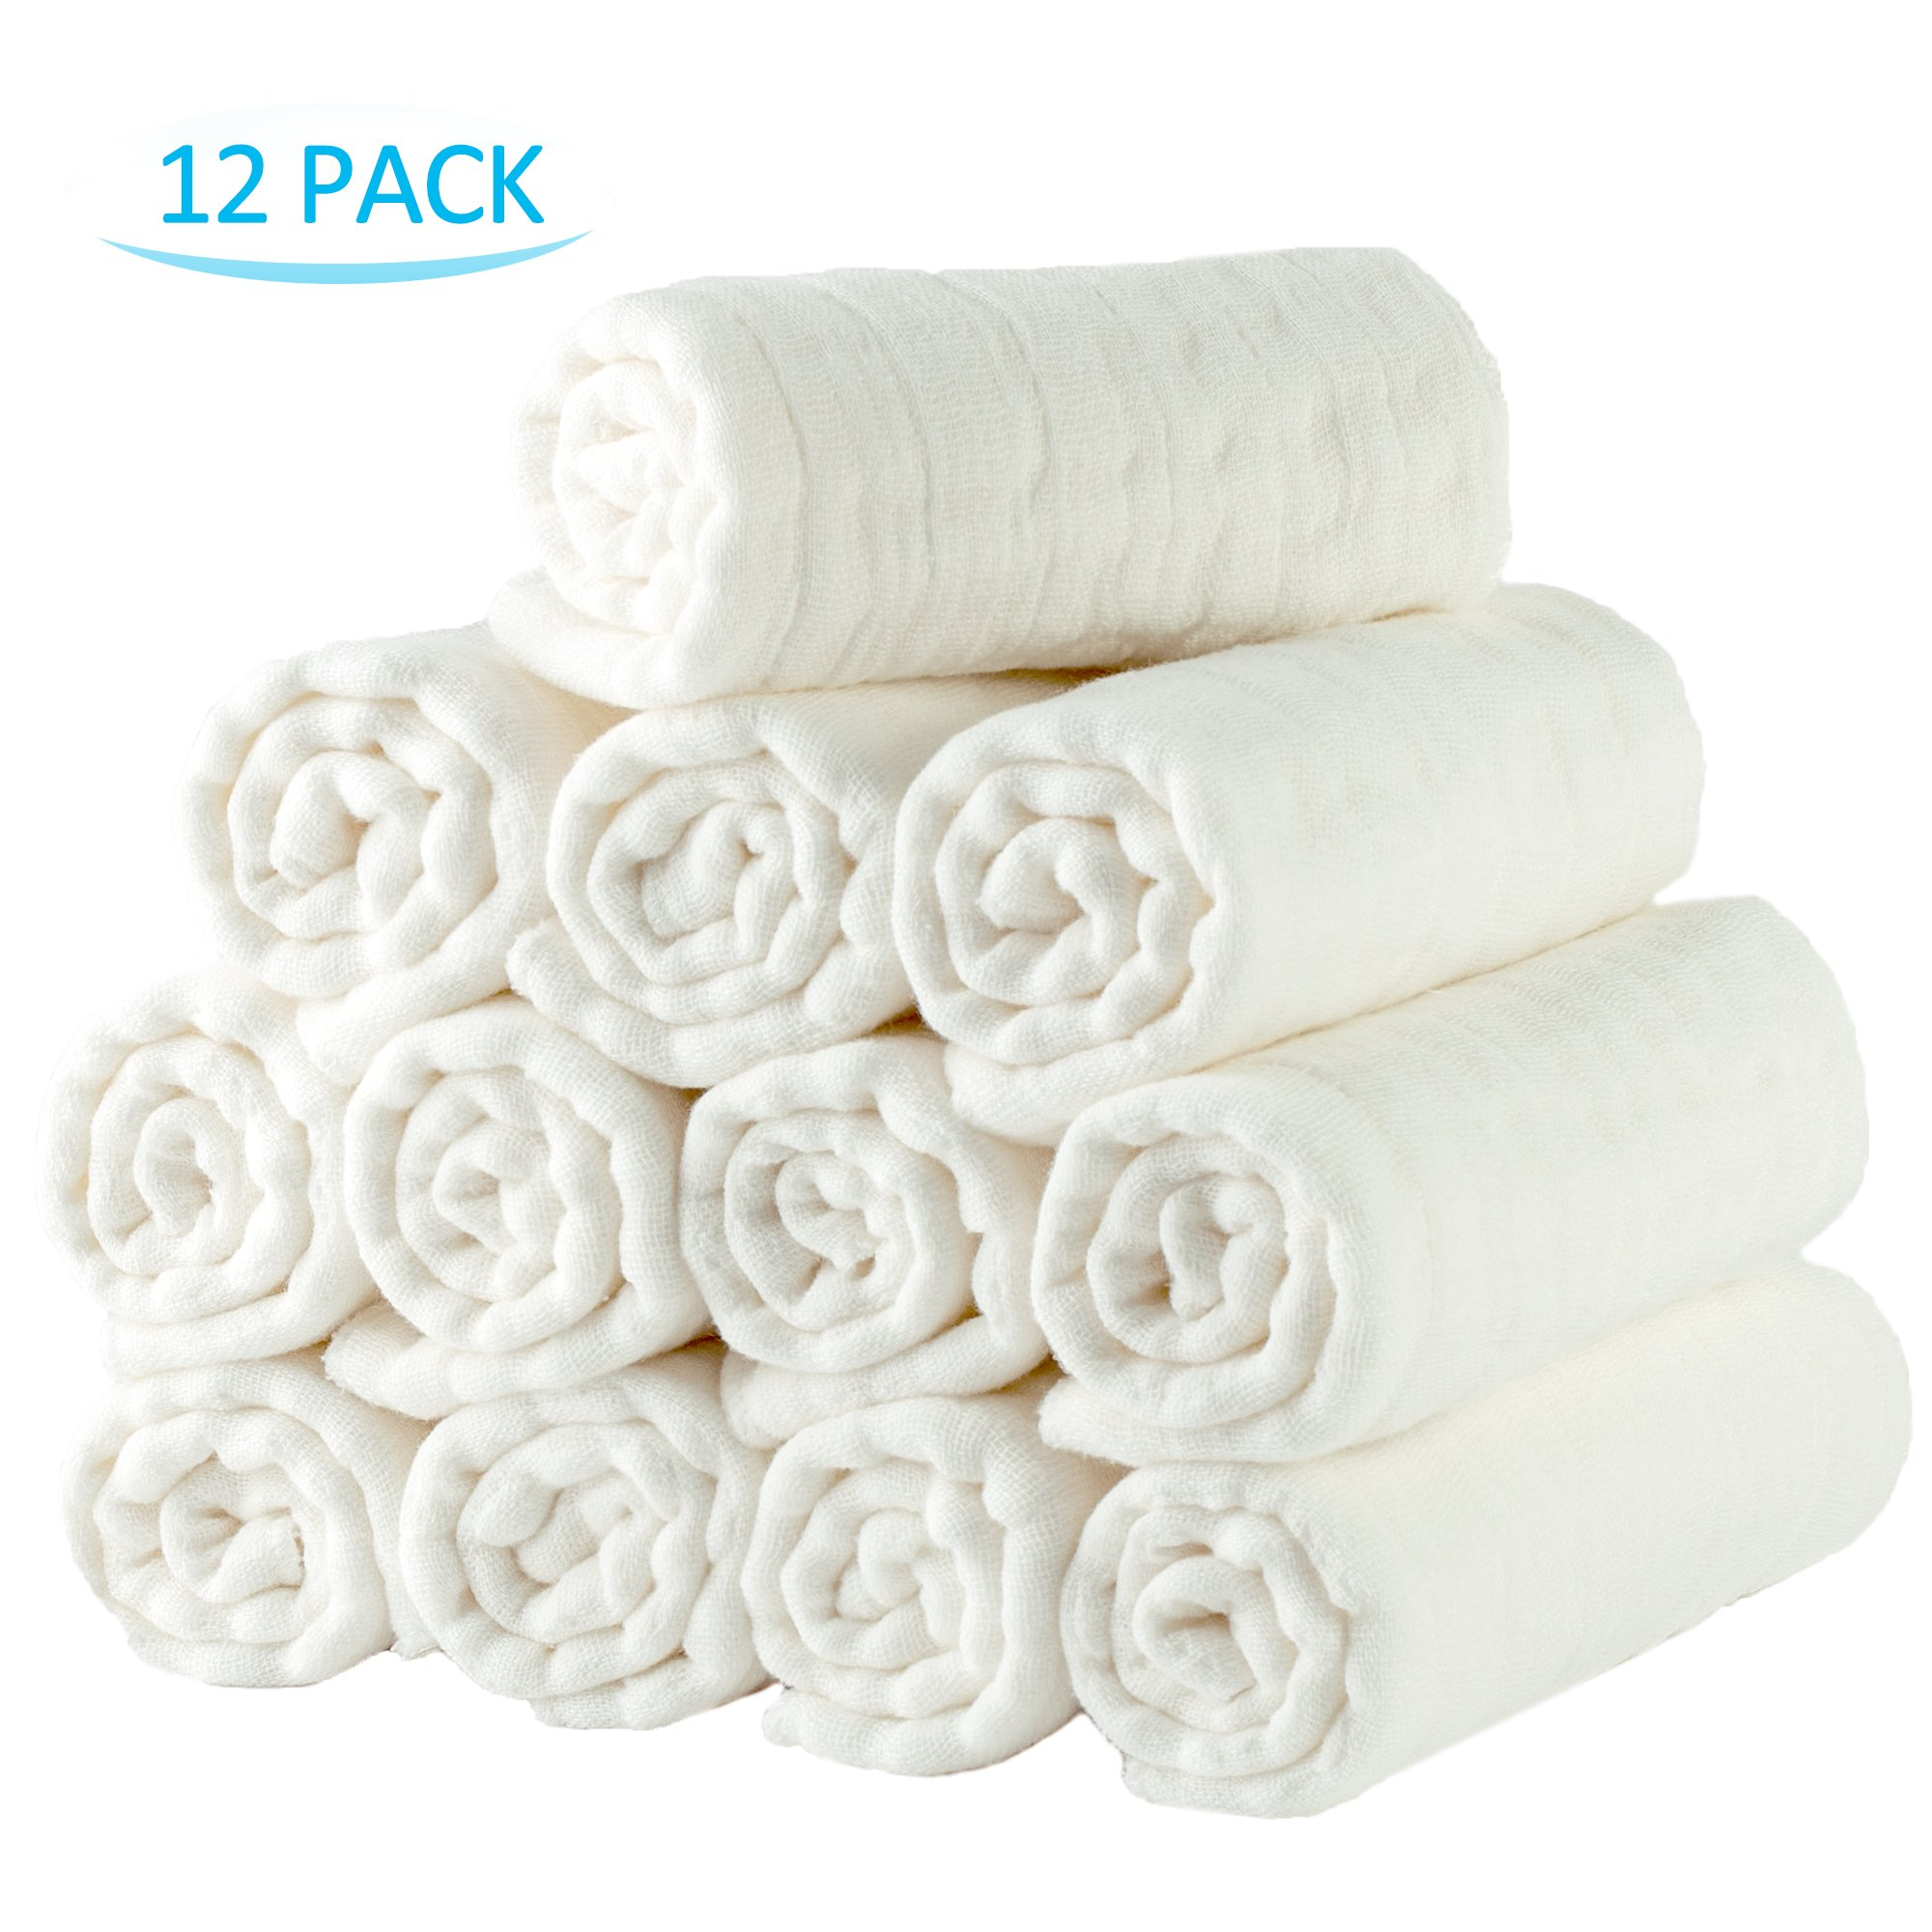 NC Prefold Cloth Diapers with Cloth Diaper Fasteners, 100% Cotton High Absorbent Diapers, Fits Newborn Babies to Toddlers (10-30 lbs), Multi-Use, White, 12 Pack